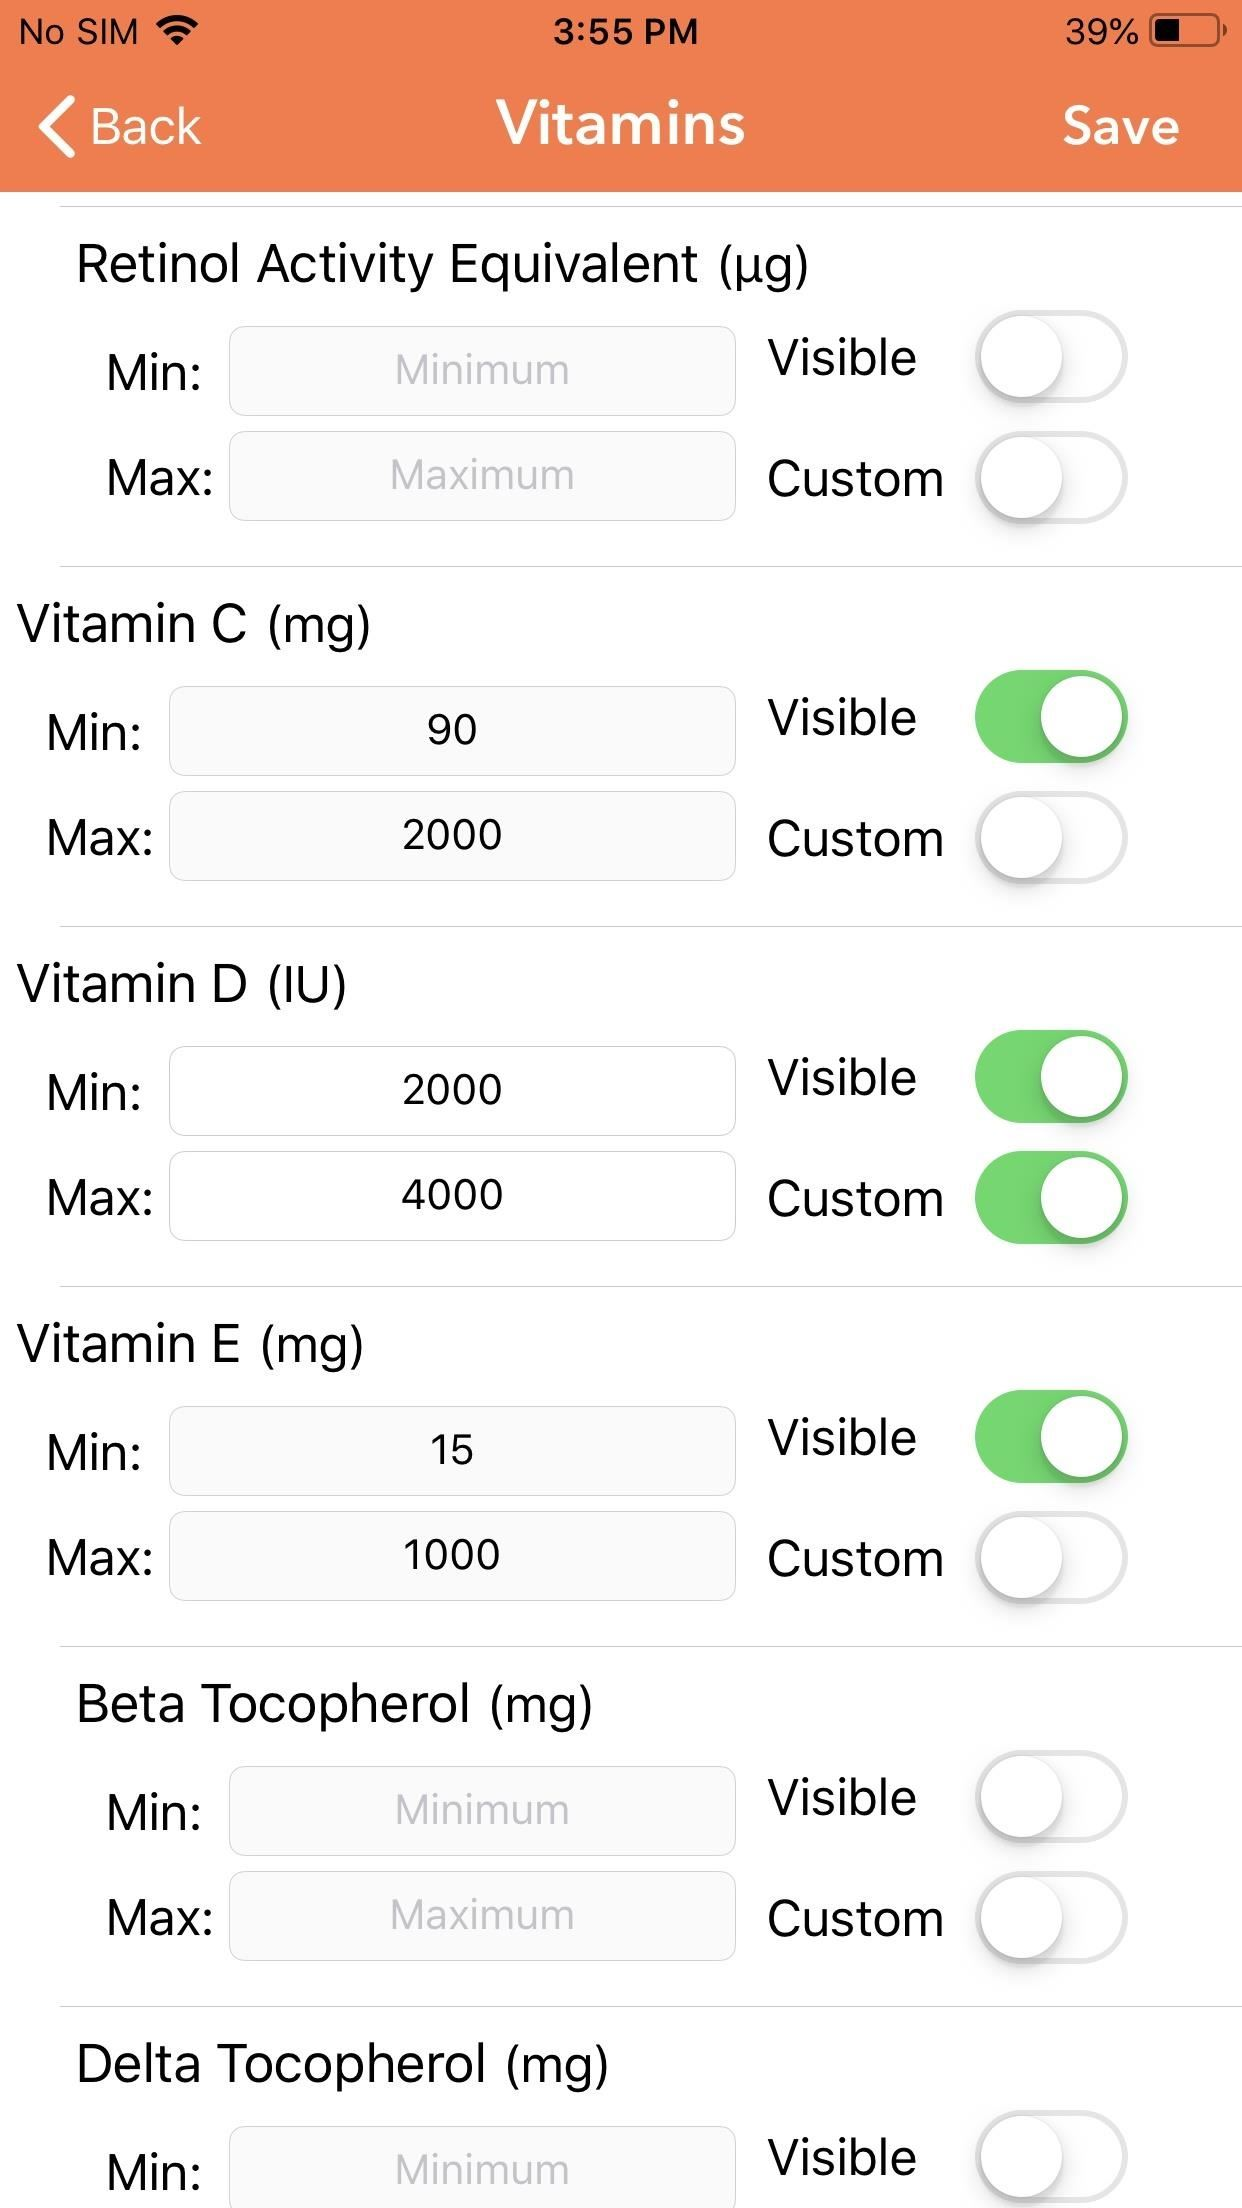 How to Track Micronutrients to Monitor Your Vitamin & Mineral Intake